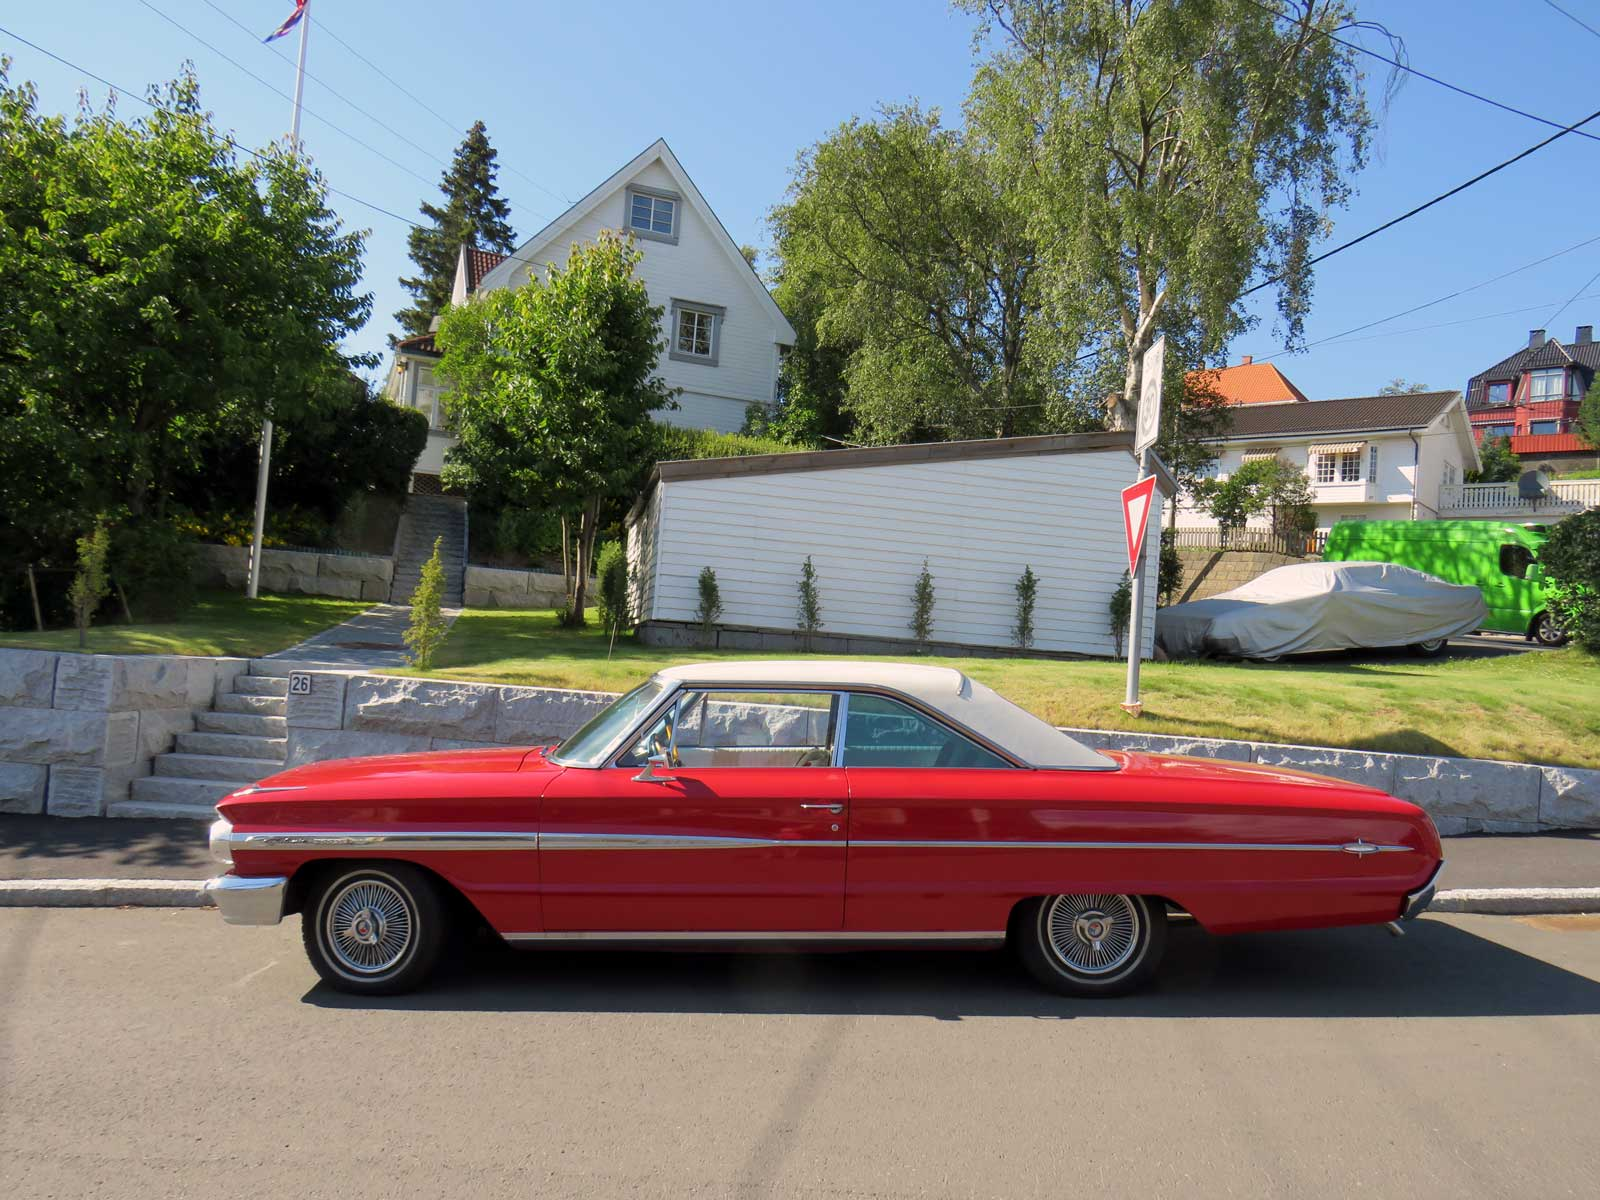 1964 Ford Galaxie 500 XL Classic car parked Oslo Norway